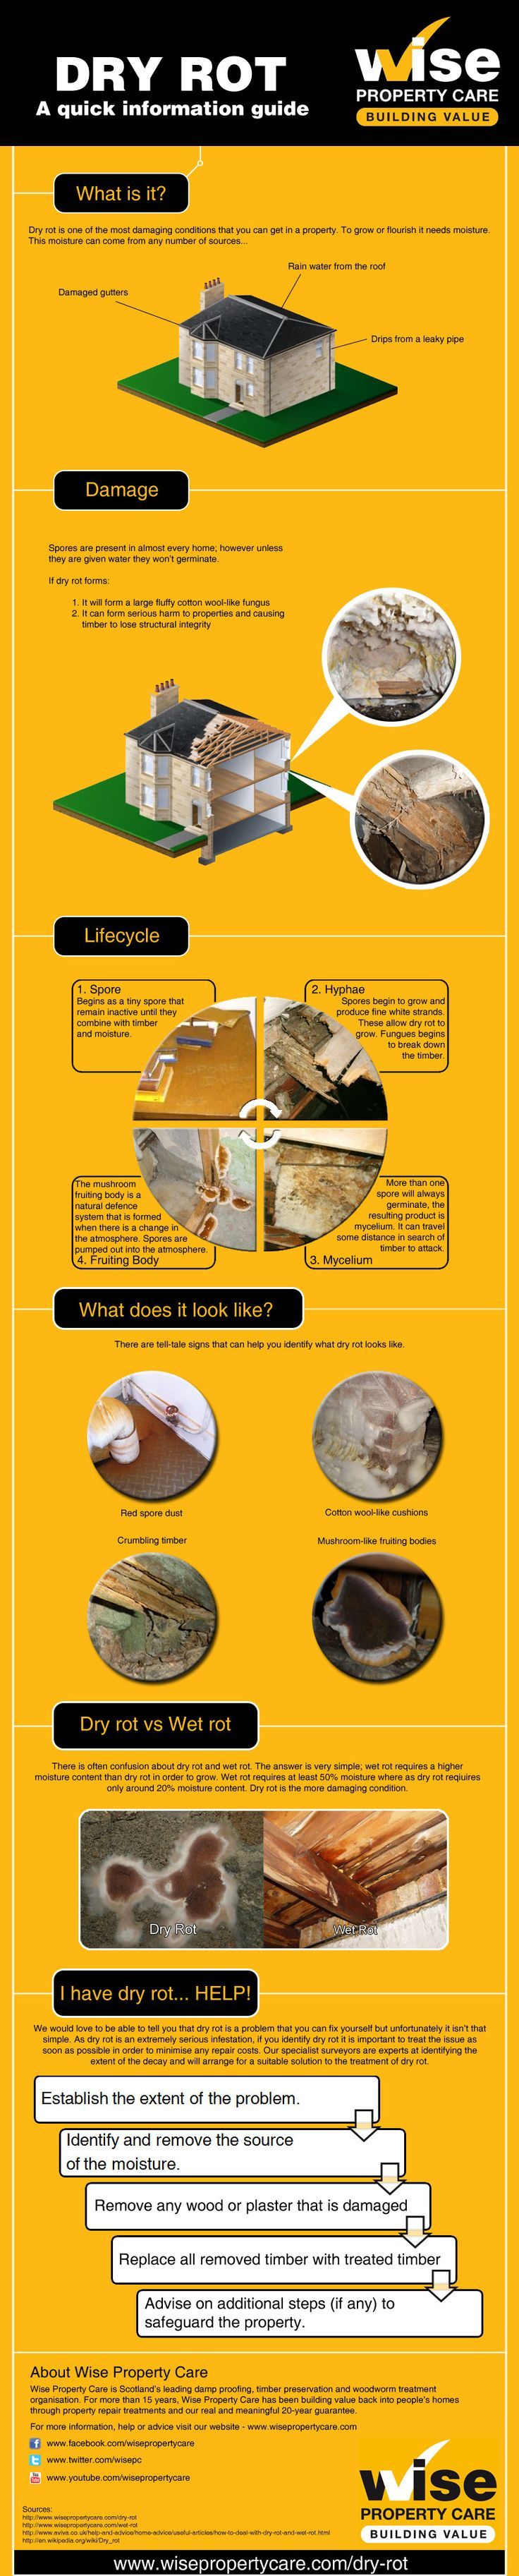 This dry rot inforgraphic will help you identify dry rot issues in your property: http://www.wisepropertycare.com/dry-rot #dryrot #damp #leaks #propertycare #propertyproblems #property #realestate #home #DIY #homeimprovement #rot #wetrot #dampproofing